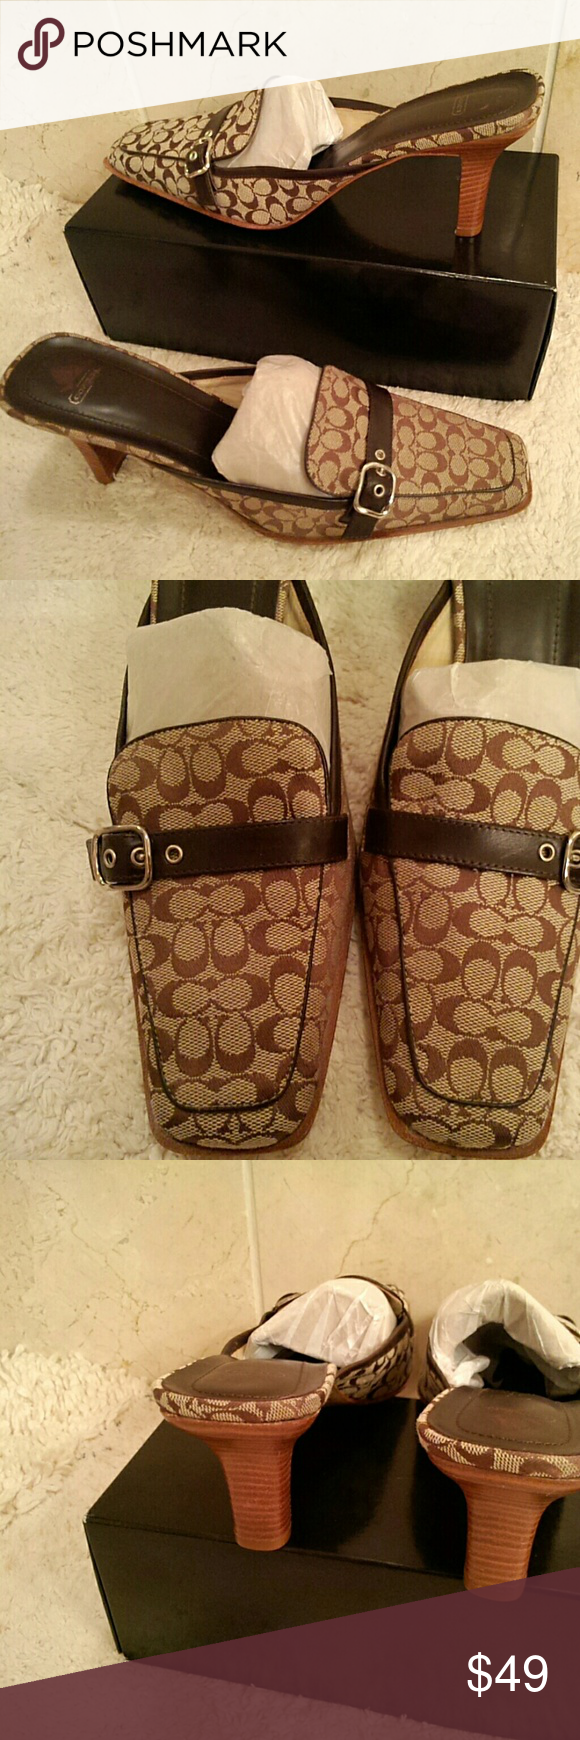 "Coach sig fabric mules Cute, cute, cute - signature fabric mules by Coach in traditional brown and tan colors; silver hardware; leather strap with silver buckle across the front; made in Italy; 3.5"" heel; size 10.5B    (T-17) Coach Shoes Mules & Clogs"